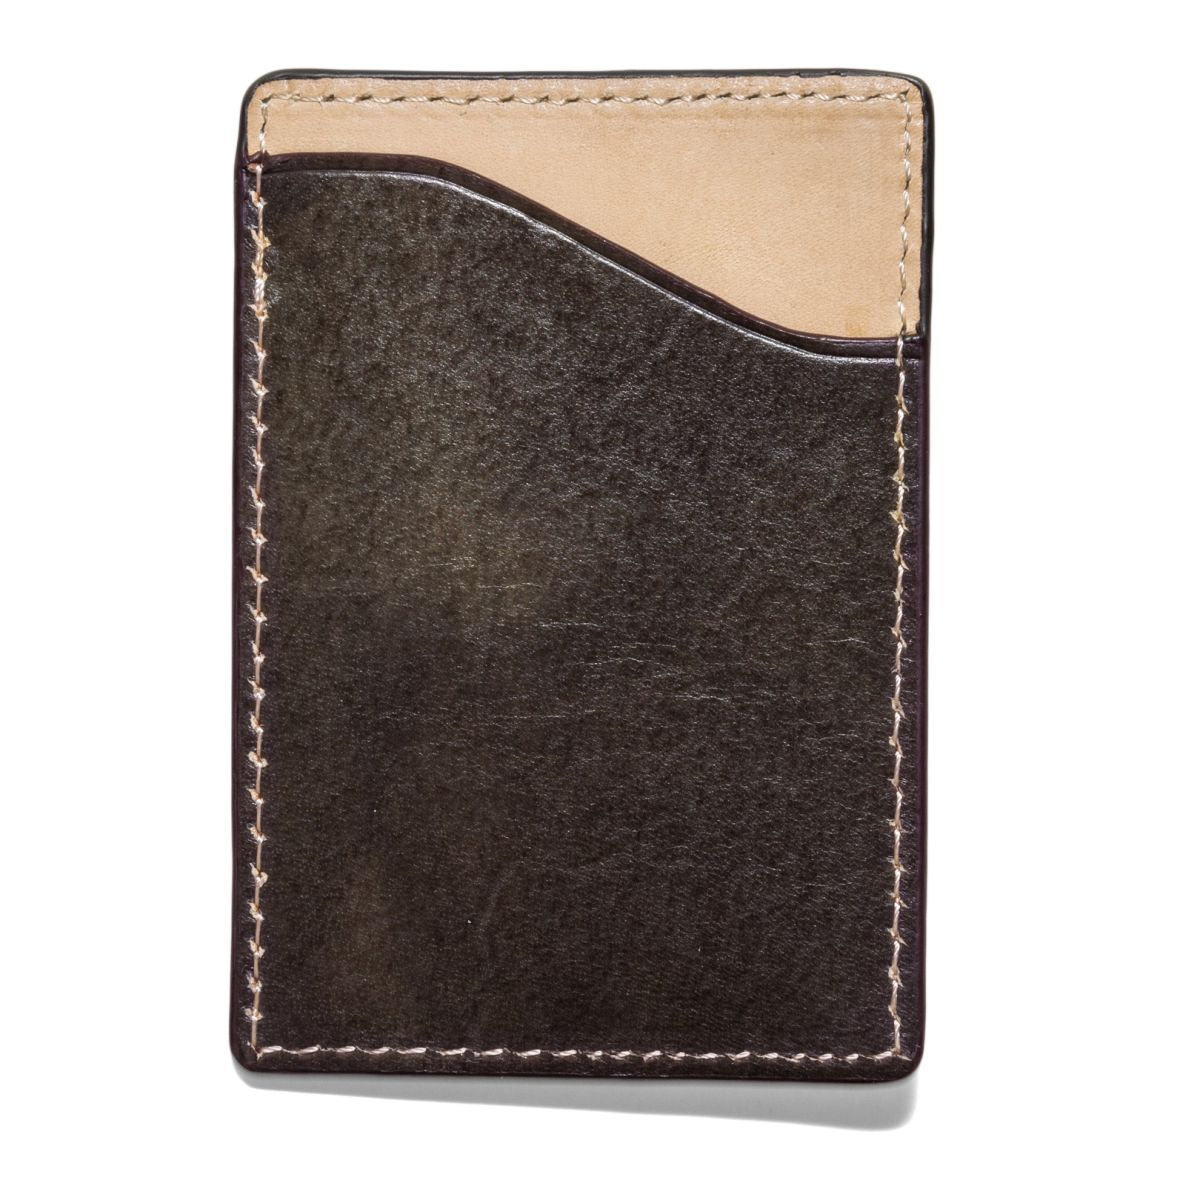 FLAT STASH Leather Wallet - Olive